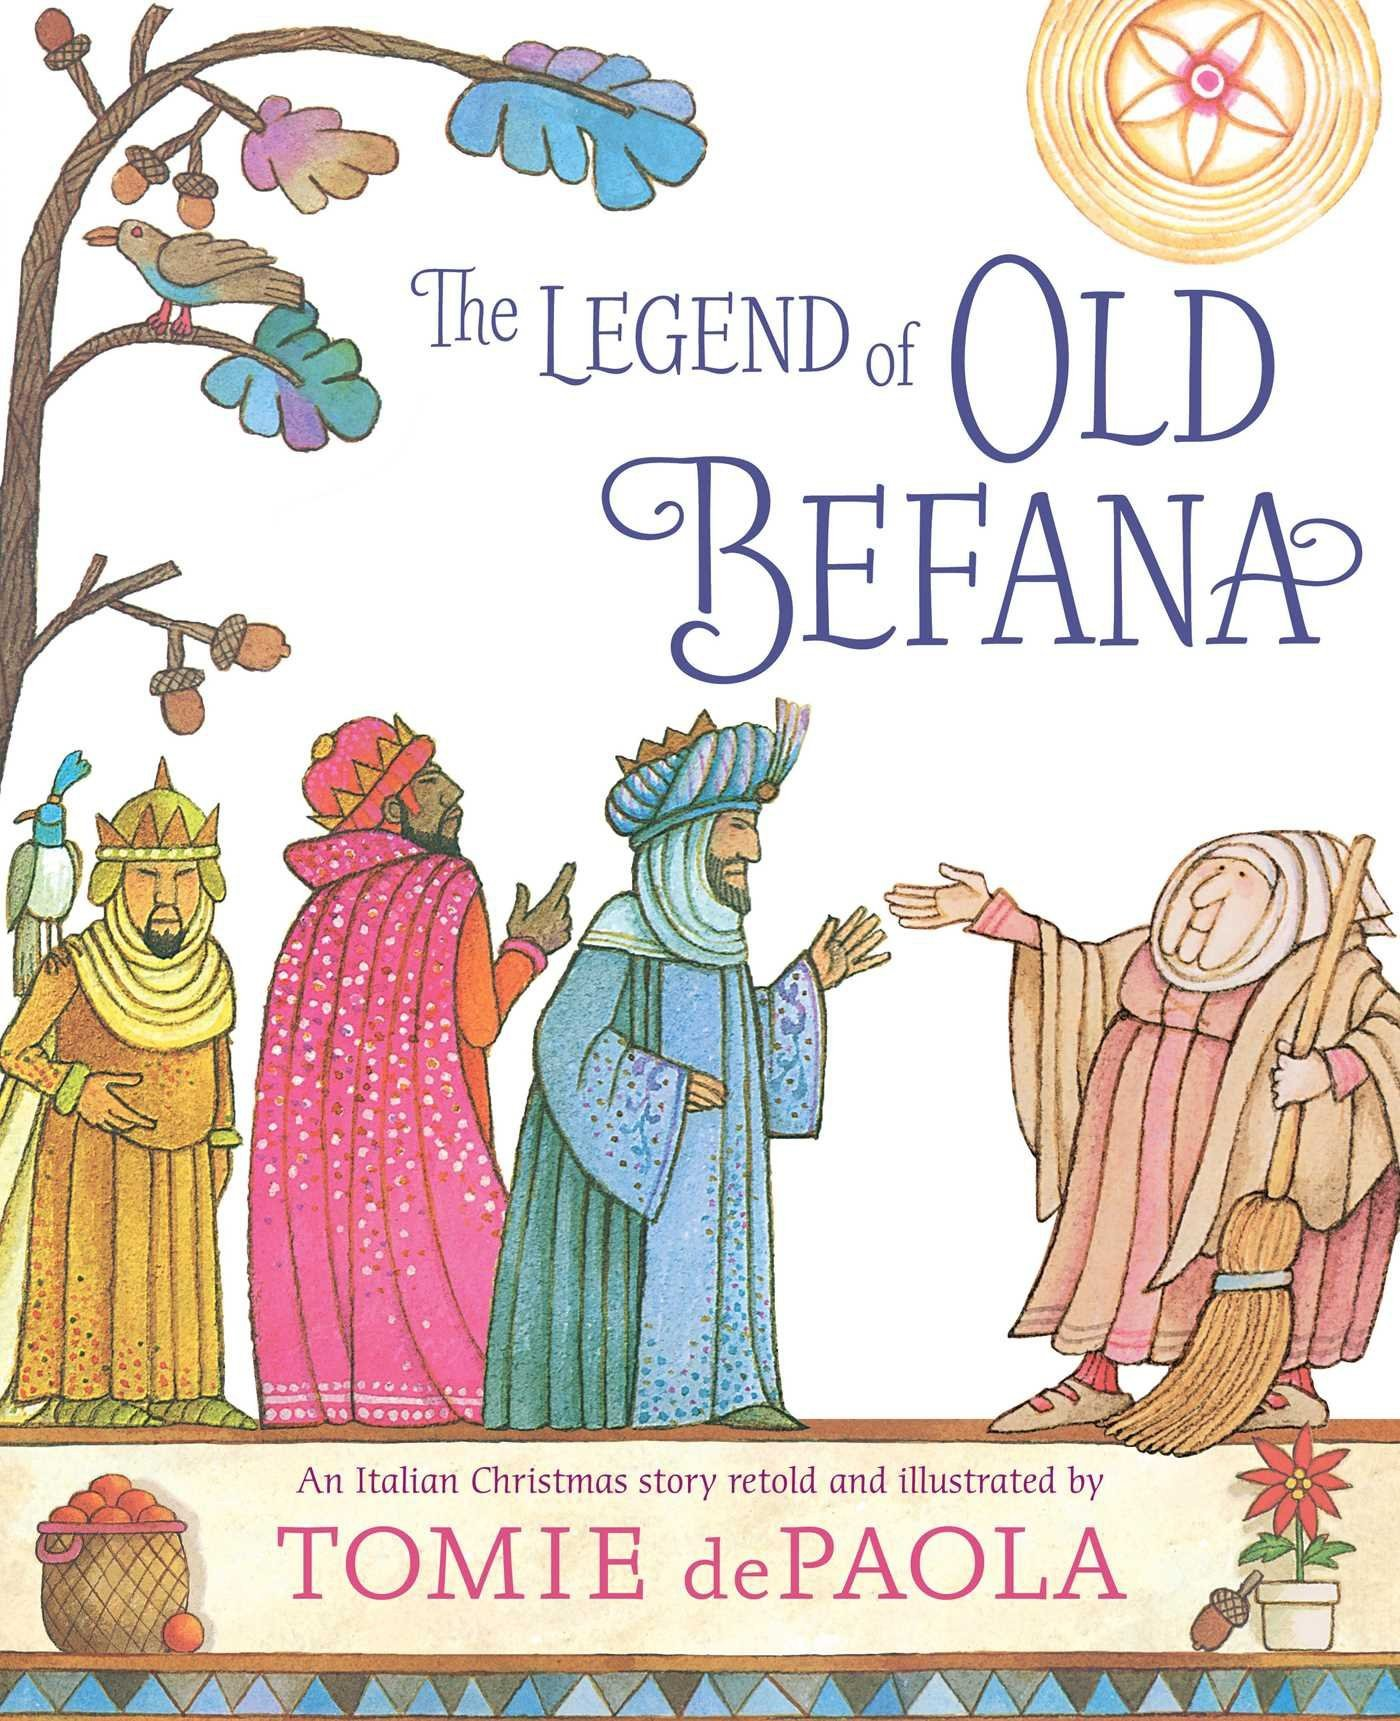 The Legend of Old Befana: An Italian Christmas Story – I AM Books